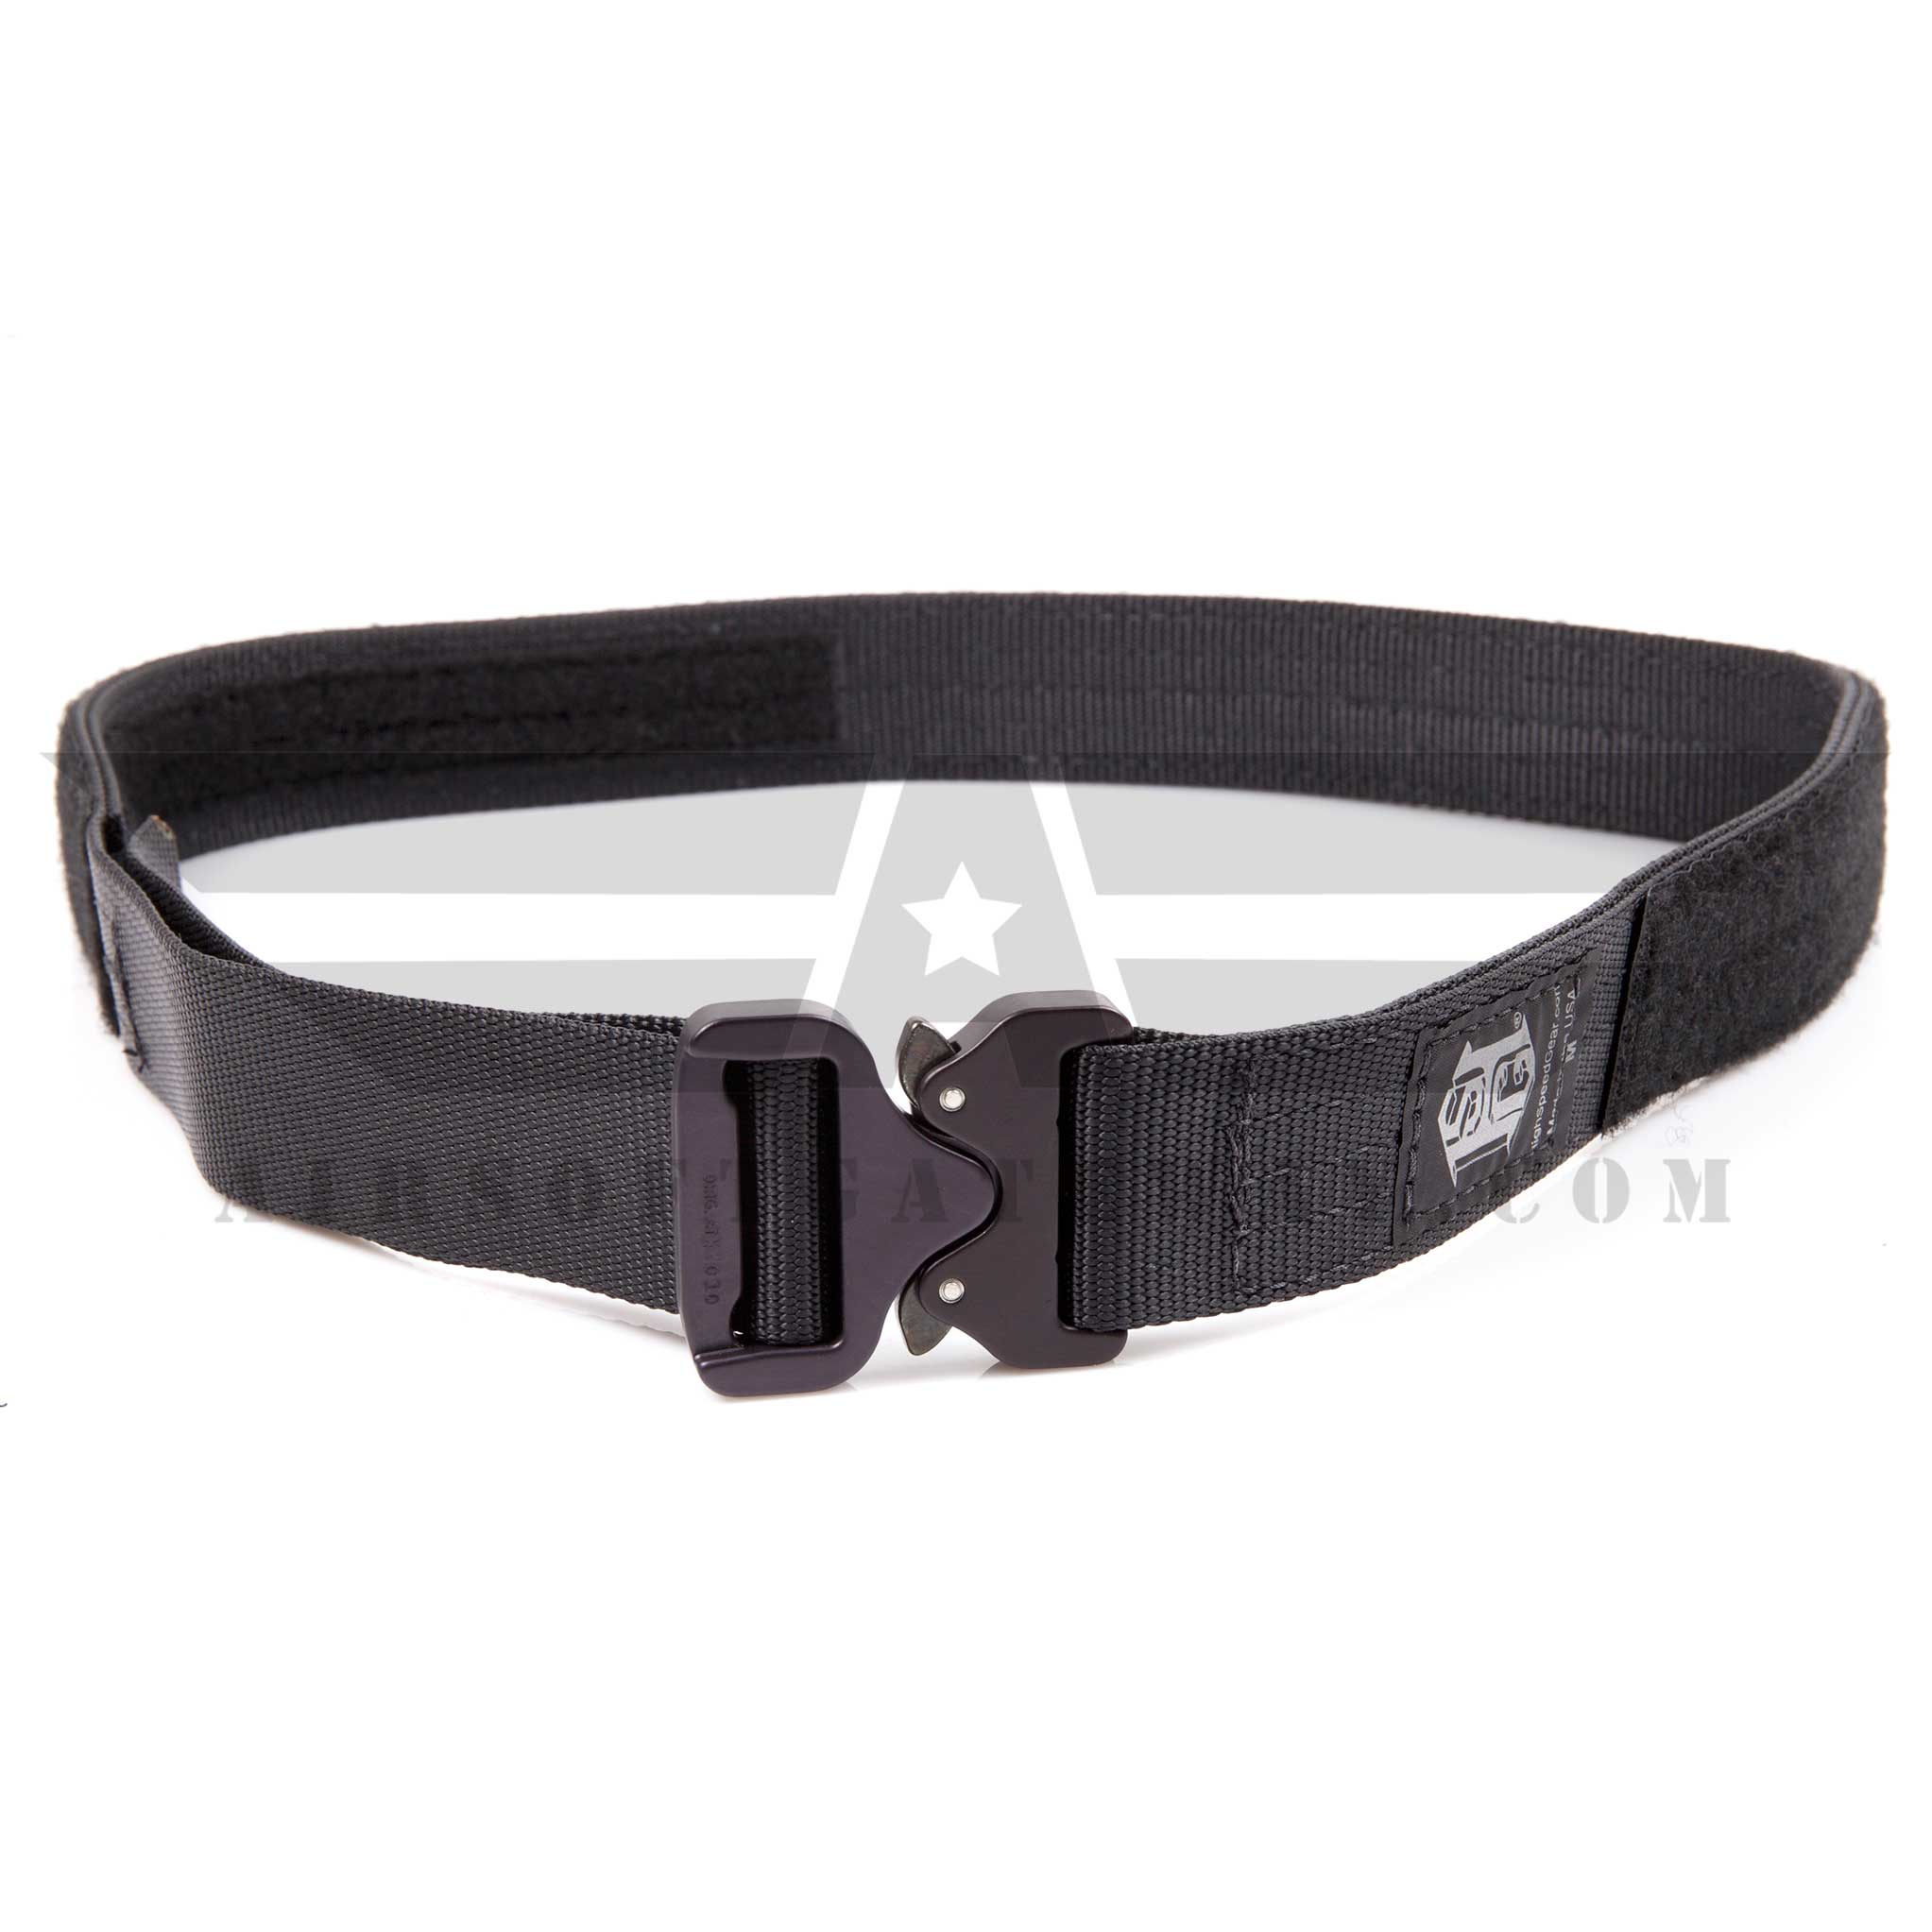 Hsgi cobra 1 5 rigger belt with interior velcro - Cobra 1 75 rigger belt with interior velcro ...